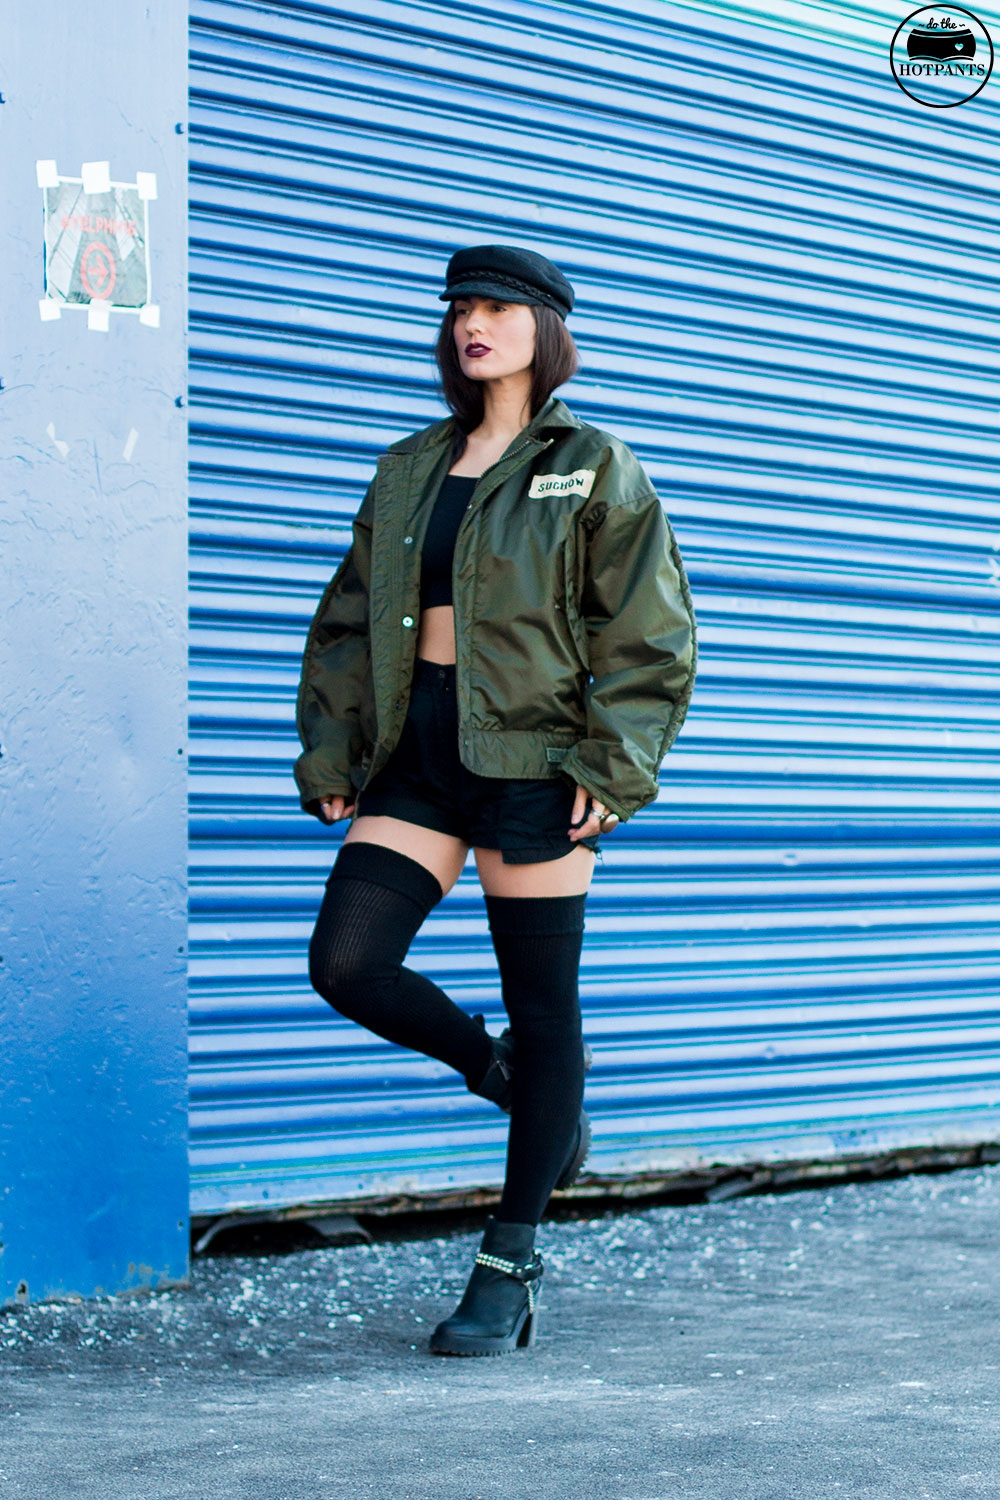 Do The Hotpants Dana Suchow Bomber Jacket Crop Top Thigh Highs Curvy Woman NYC Fashion IMG_7978